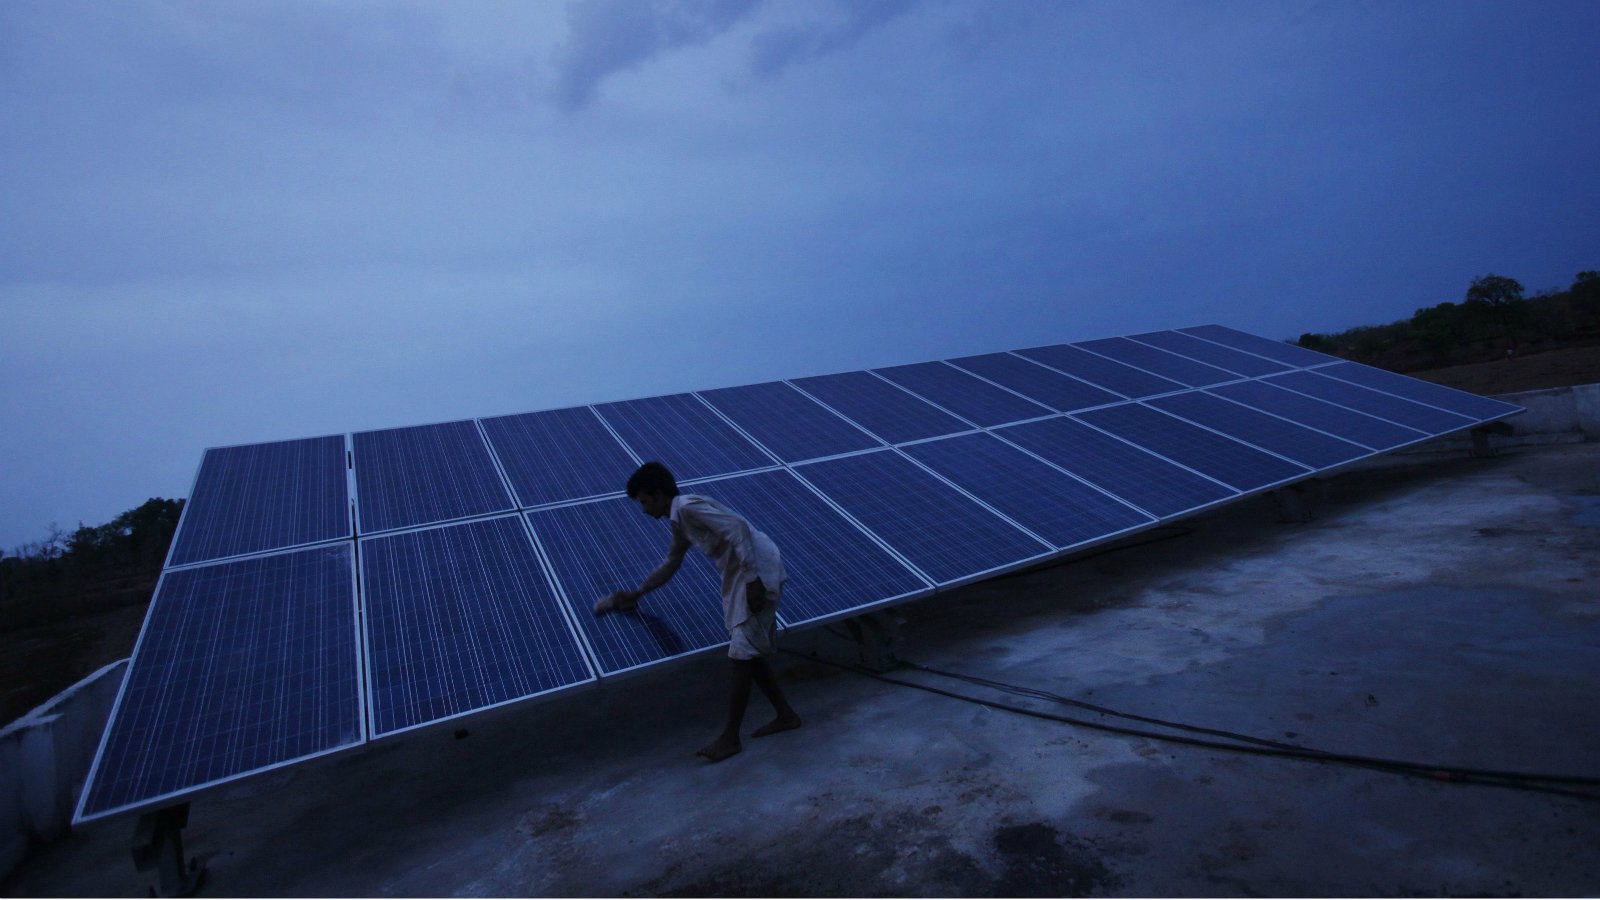 Rooftop solar is the fastest-growing segment in India's